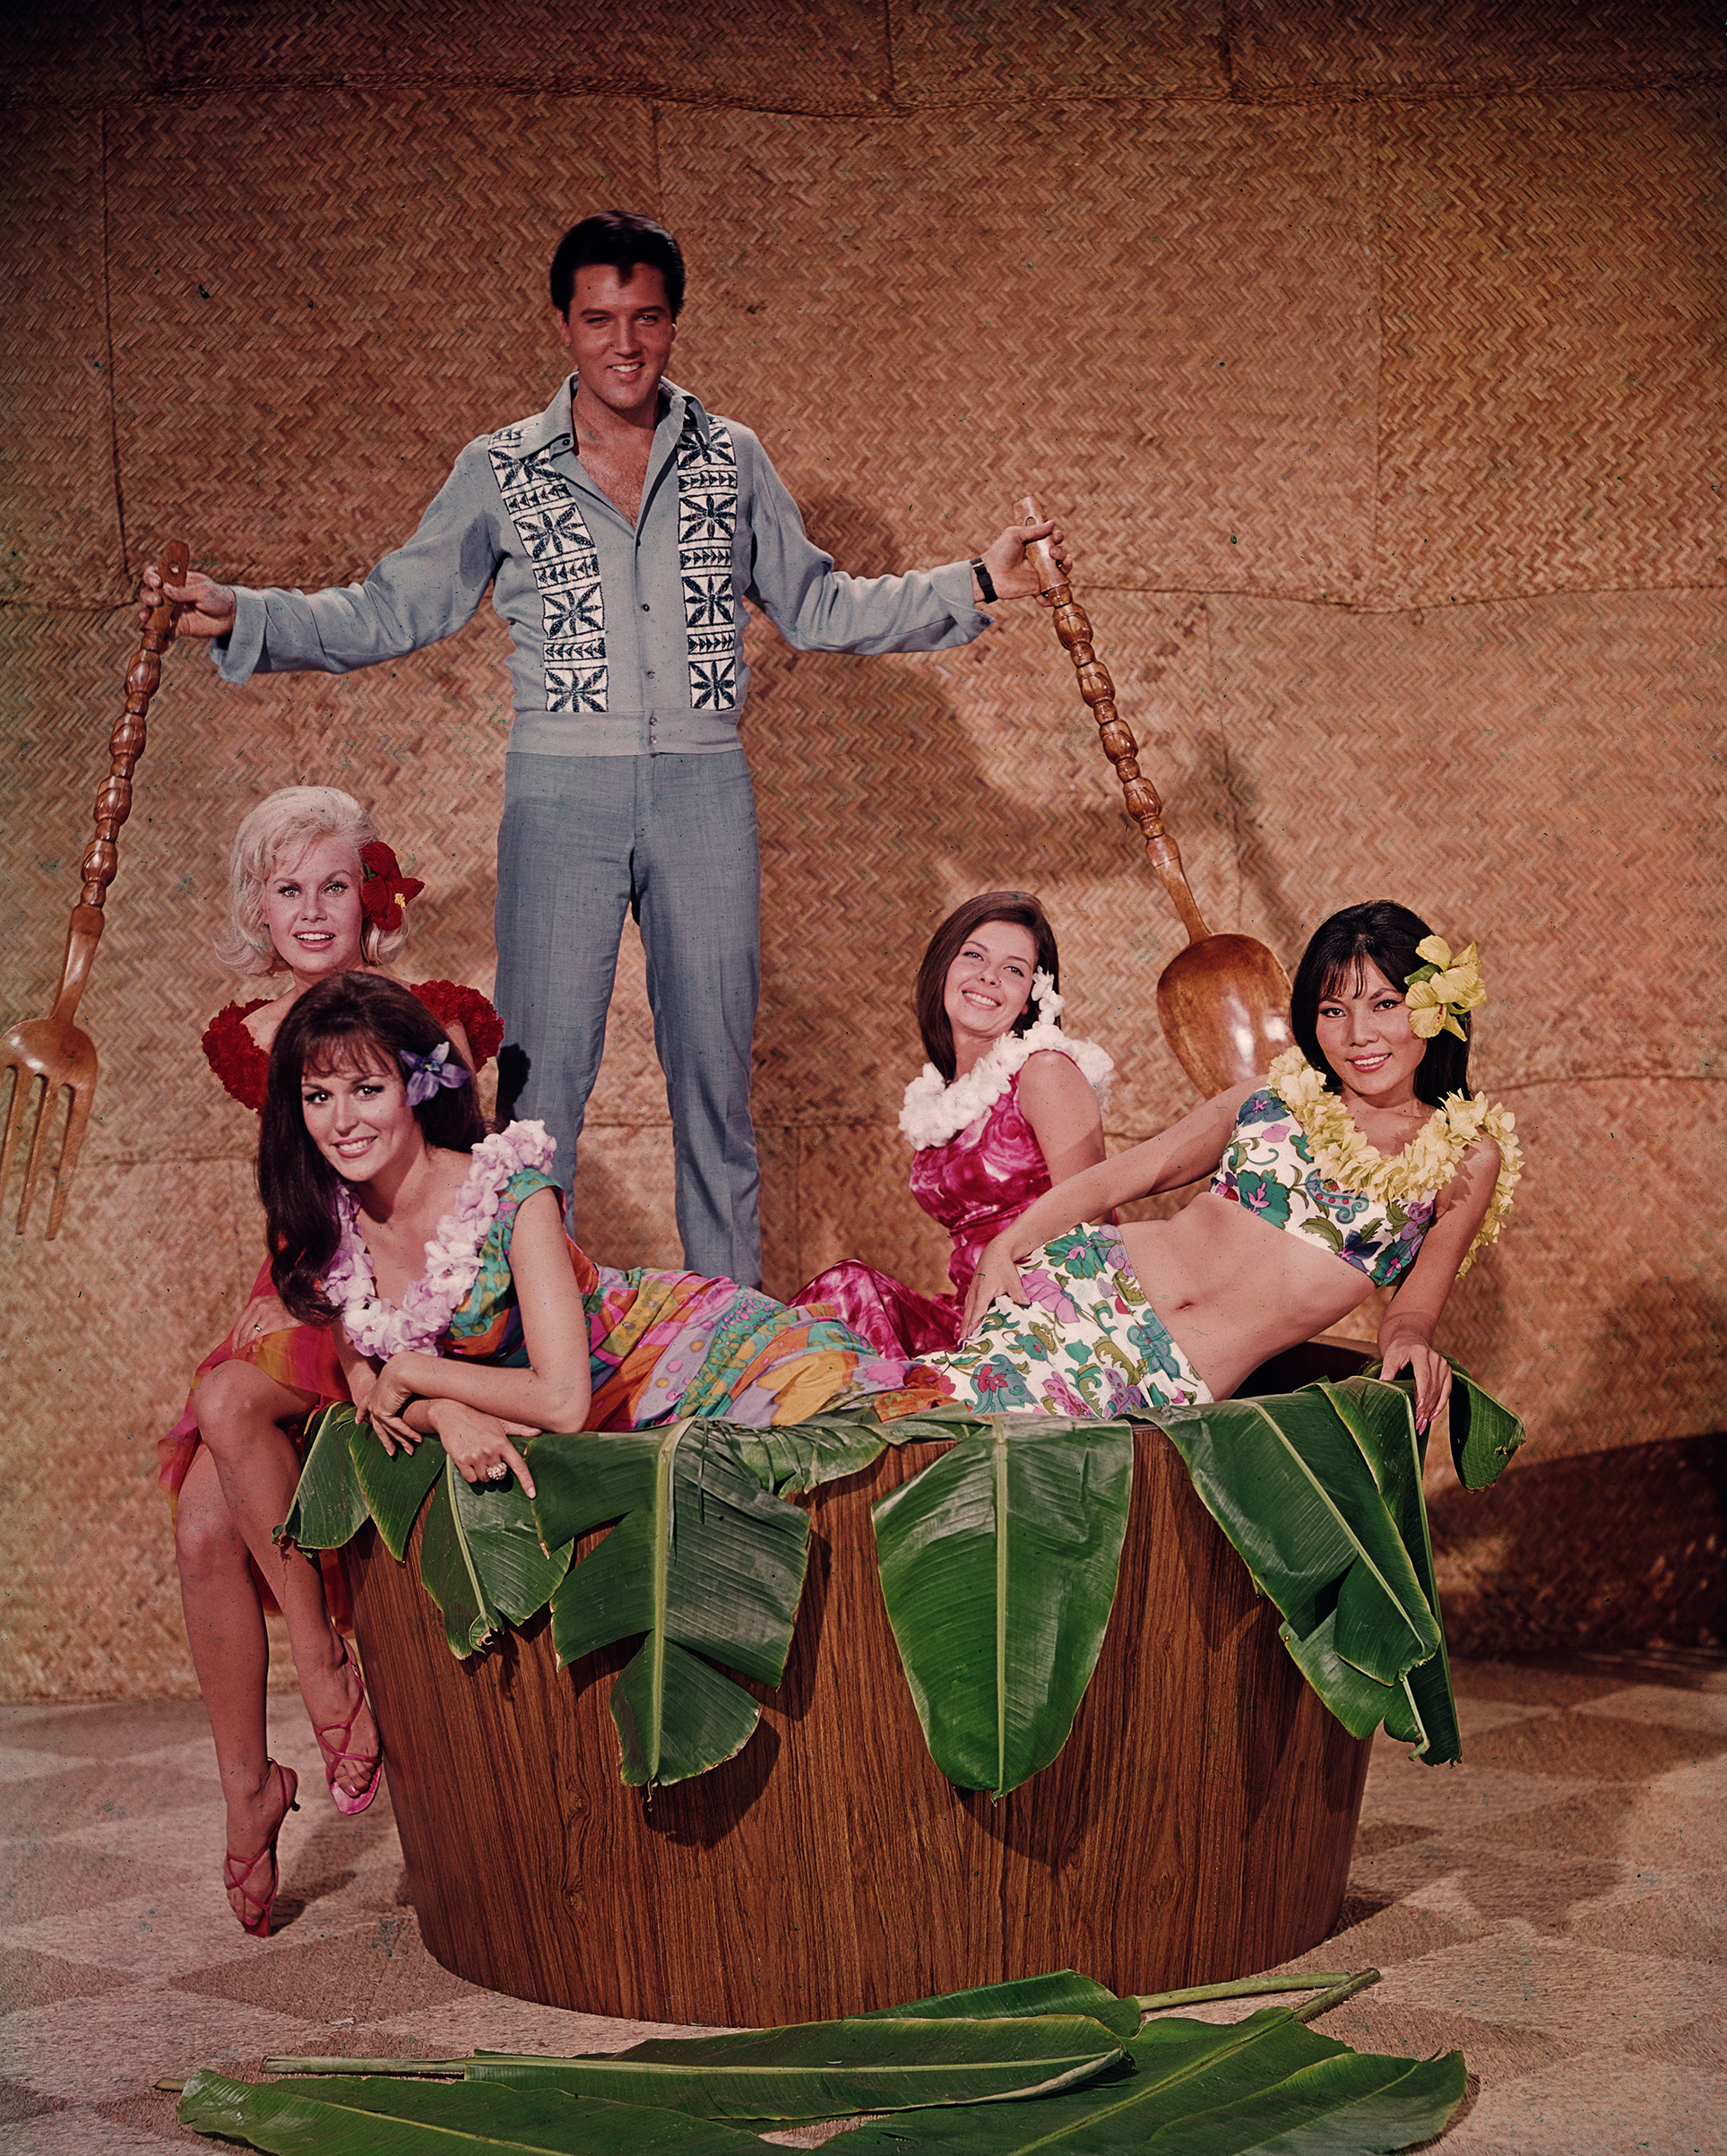 Paradise, Hawaiian Style : 1966, Elvis poses in a promotional picture with Suzanna Leigh (blonde).